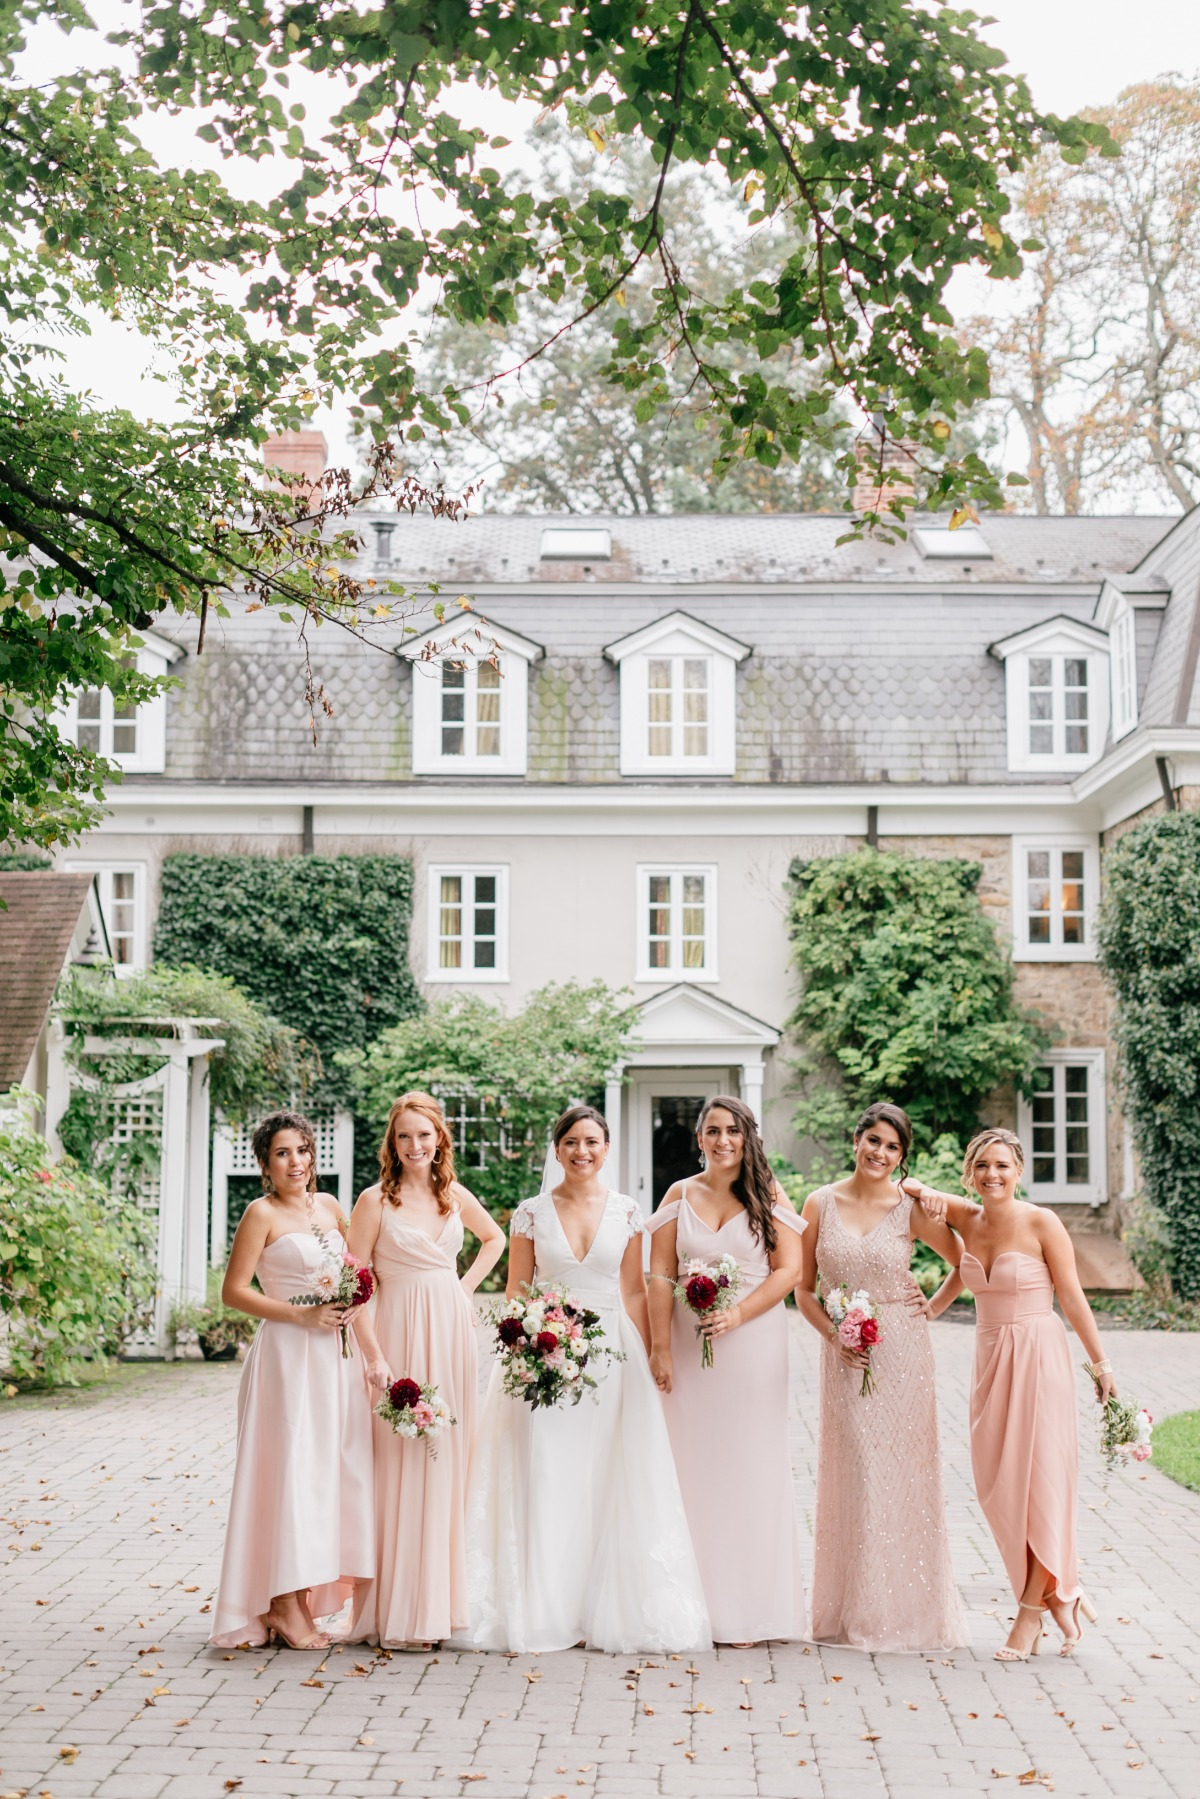 Mismatched blush rose bridesmaid dresses